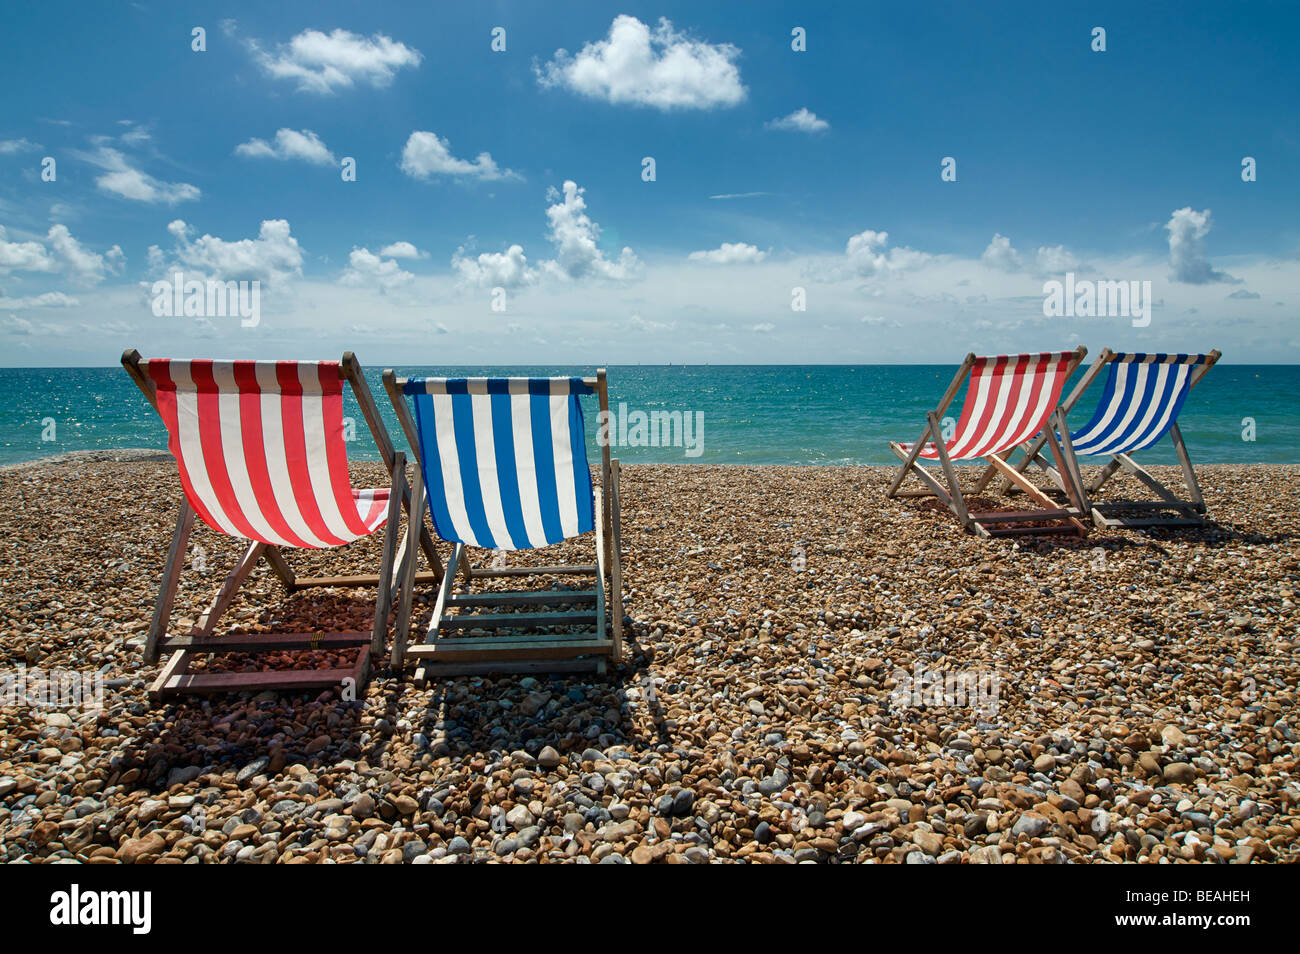 Empty deckchairs on Brighton beach, England - Stock Image